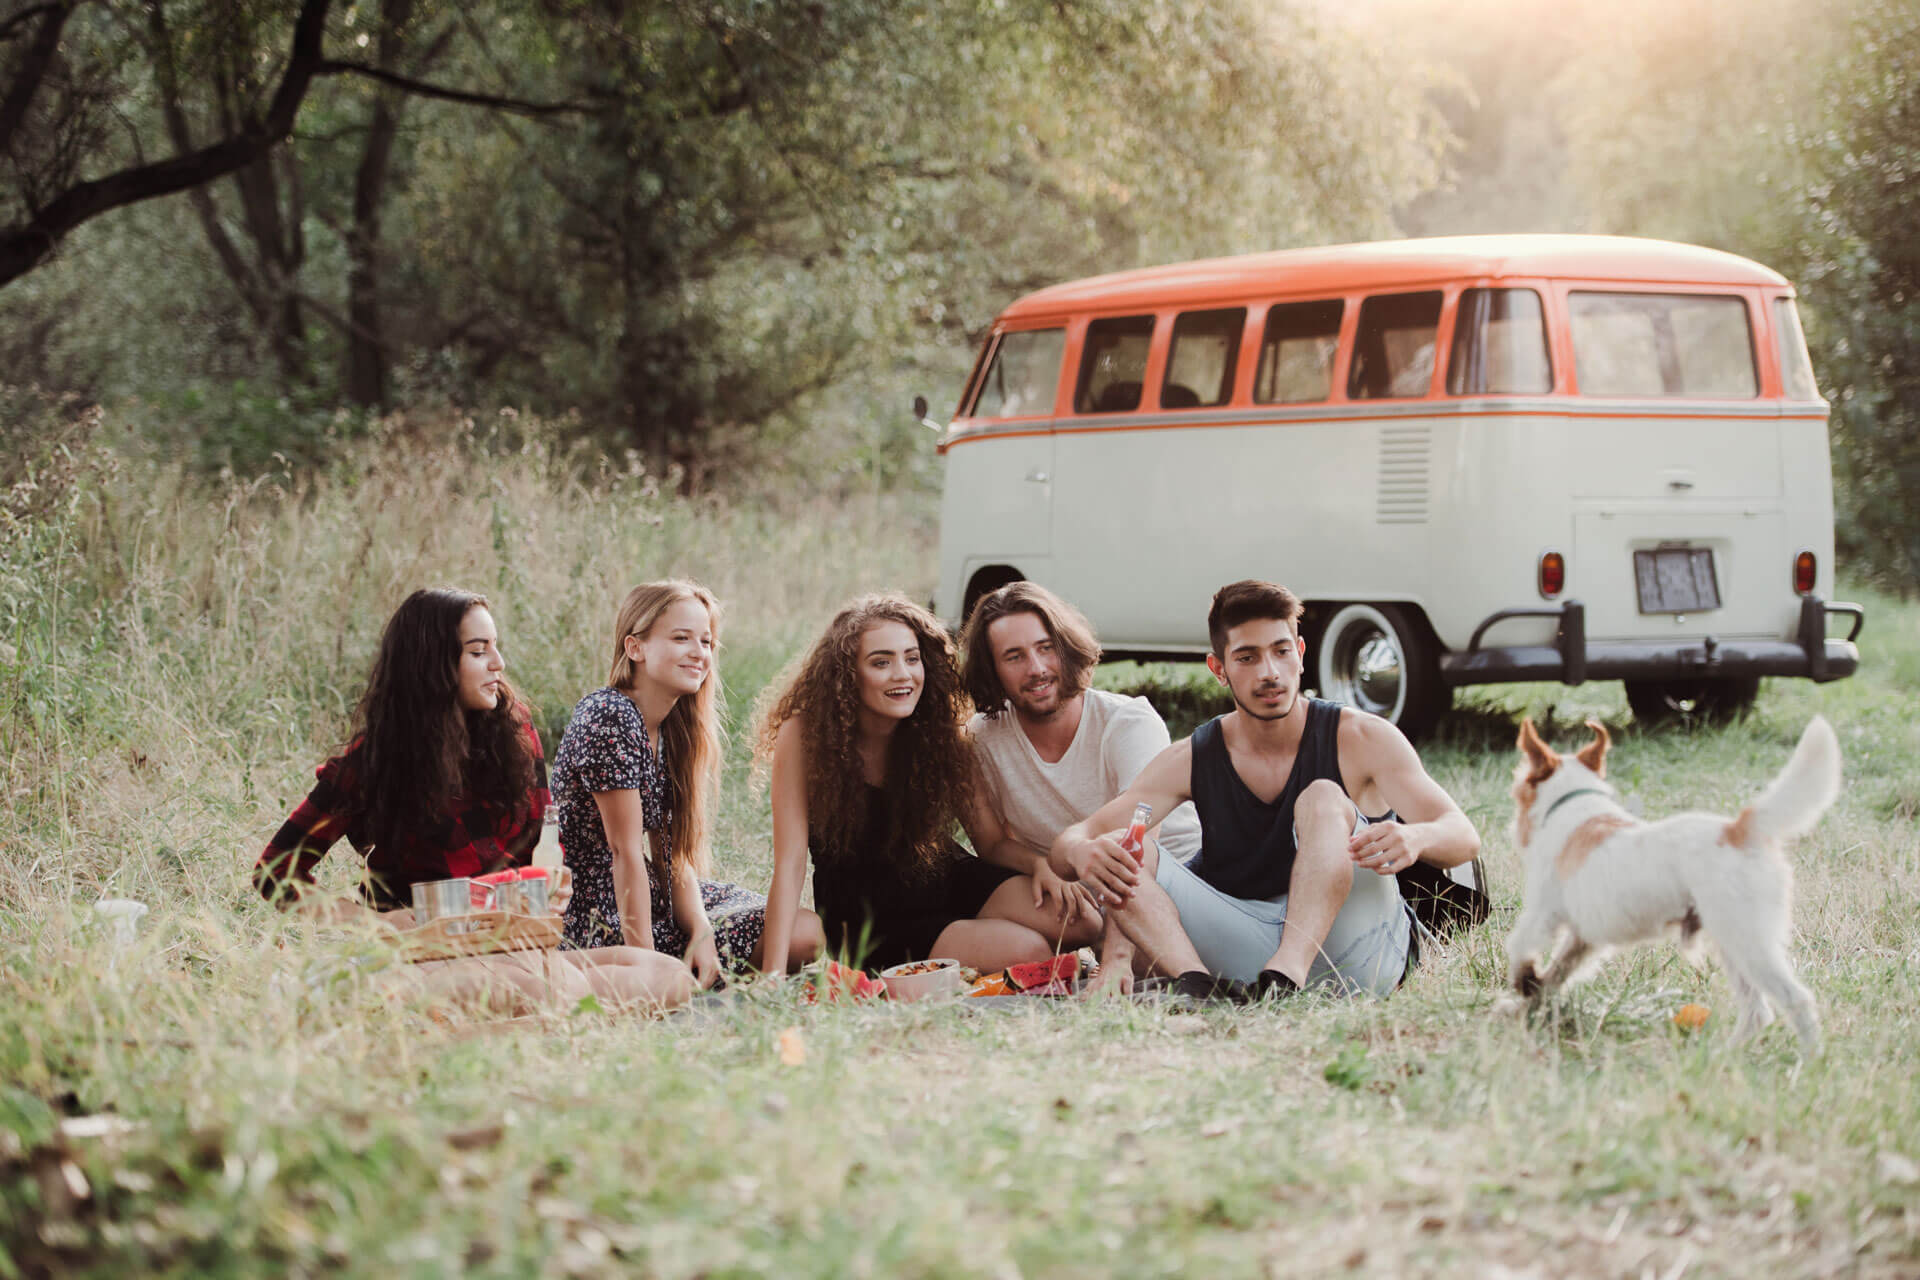 Young people in nature with dog and van - benefits of having a dog